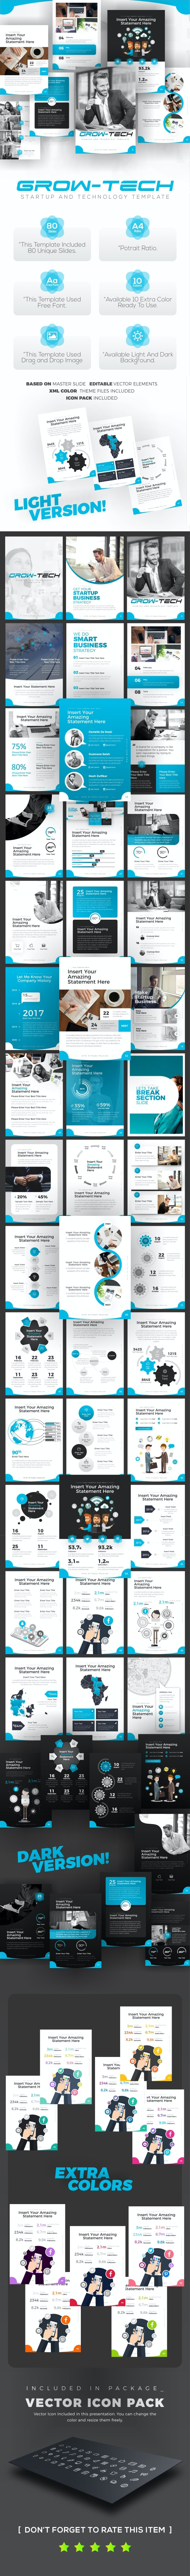 Grow-Tech Portrait Business PowerPoint Template - PowerPoint Templates Presentation Templates